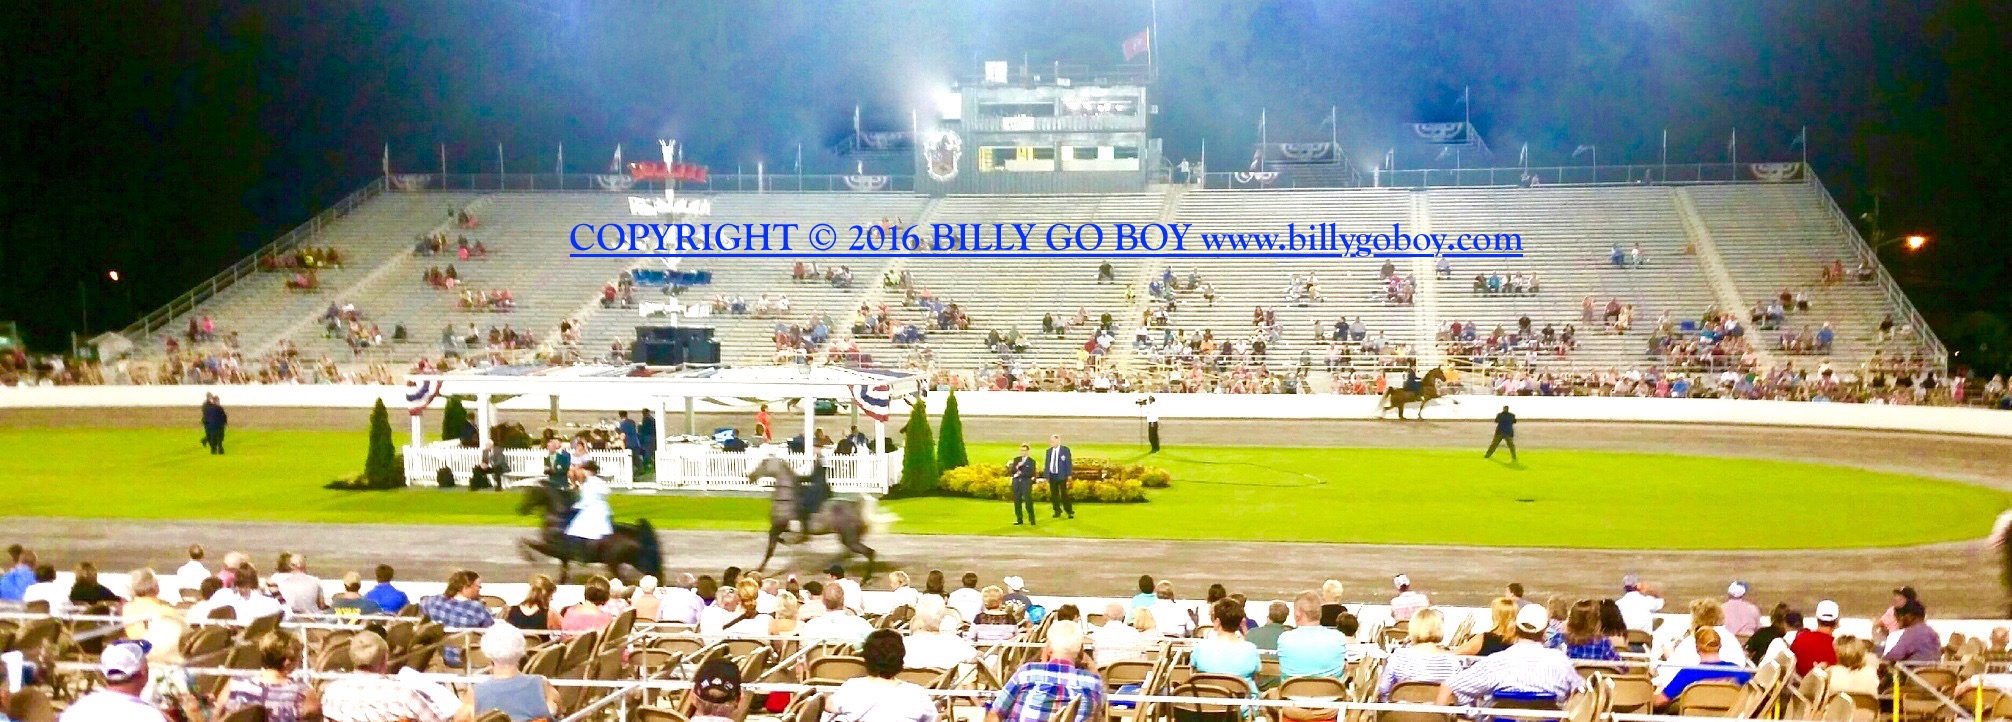 CEL201608252016WESTGRANDSTANDS